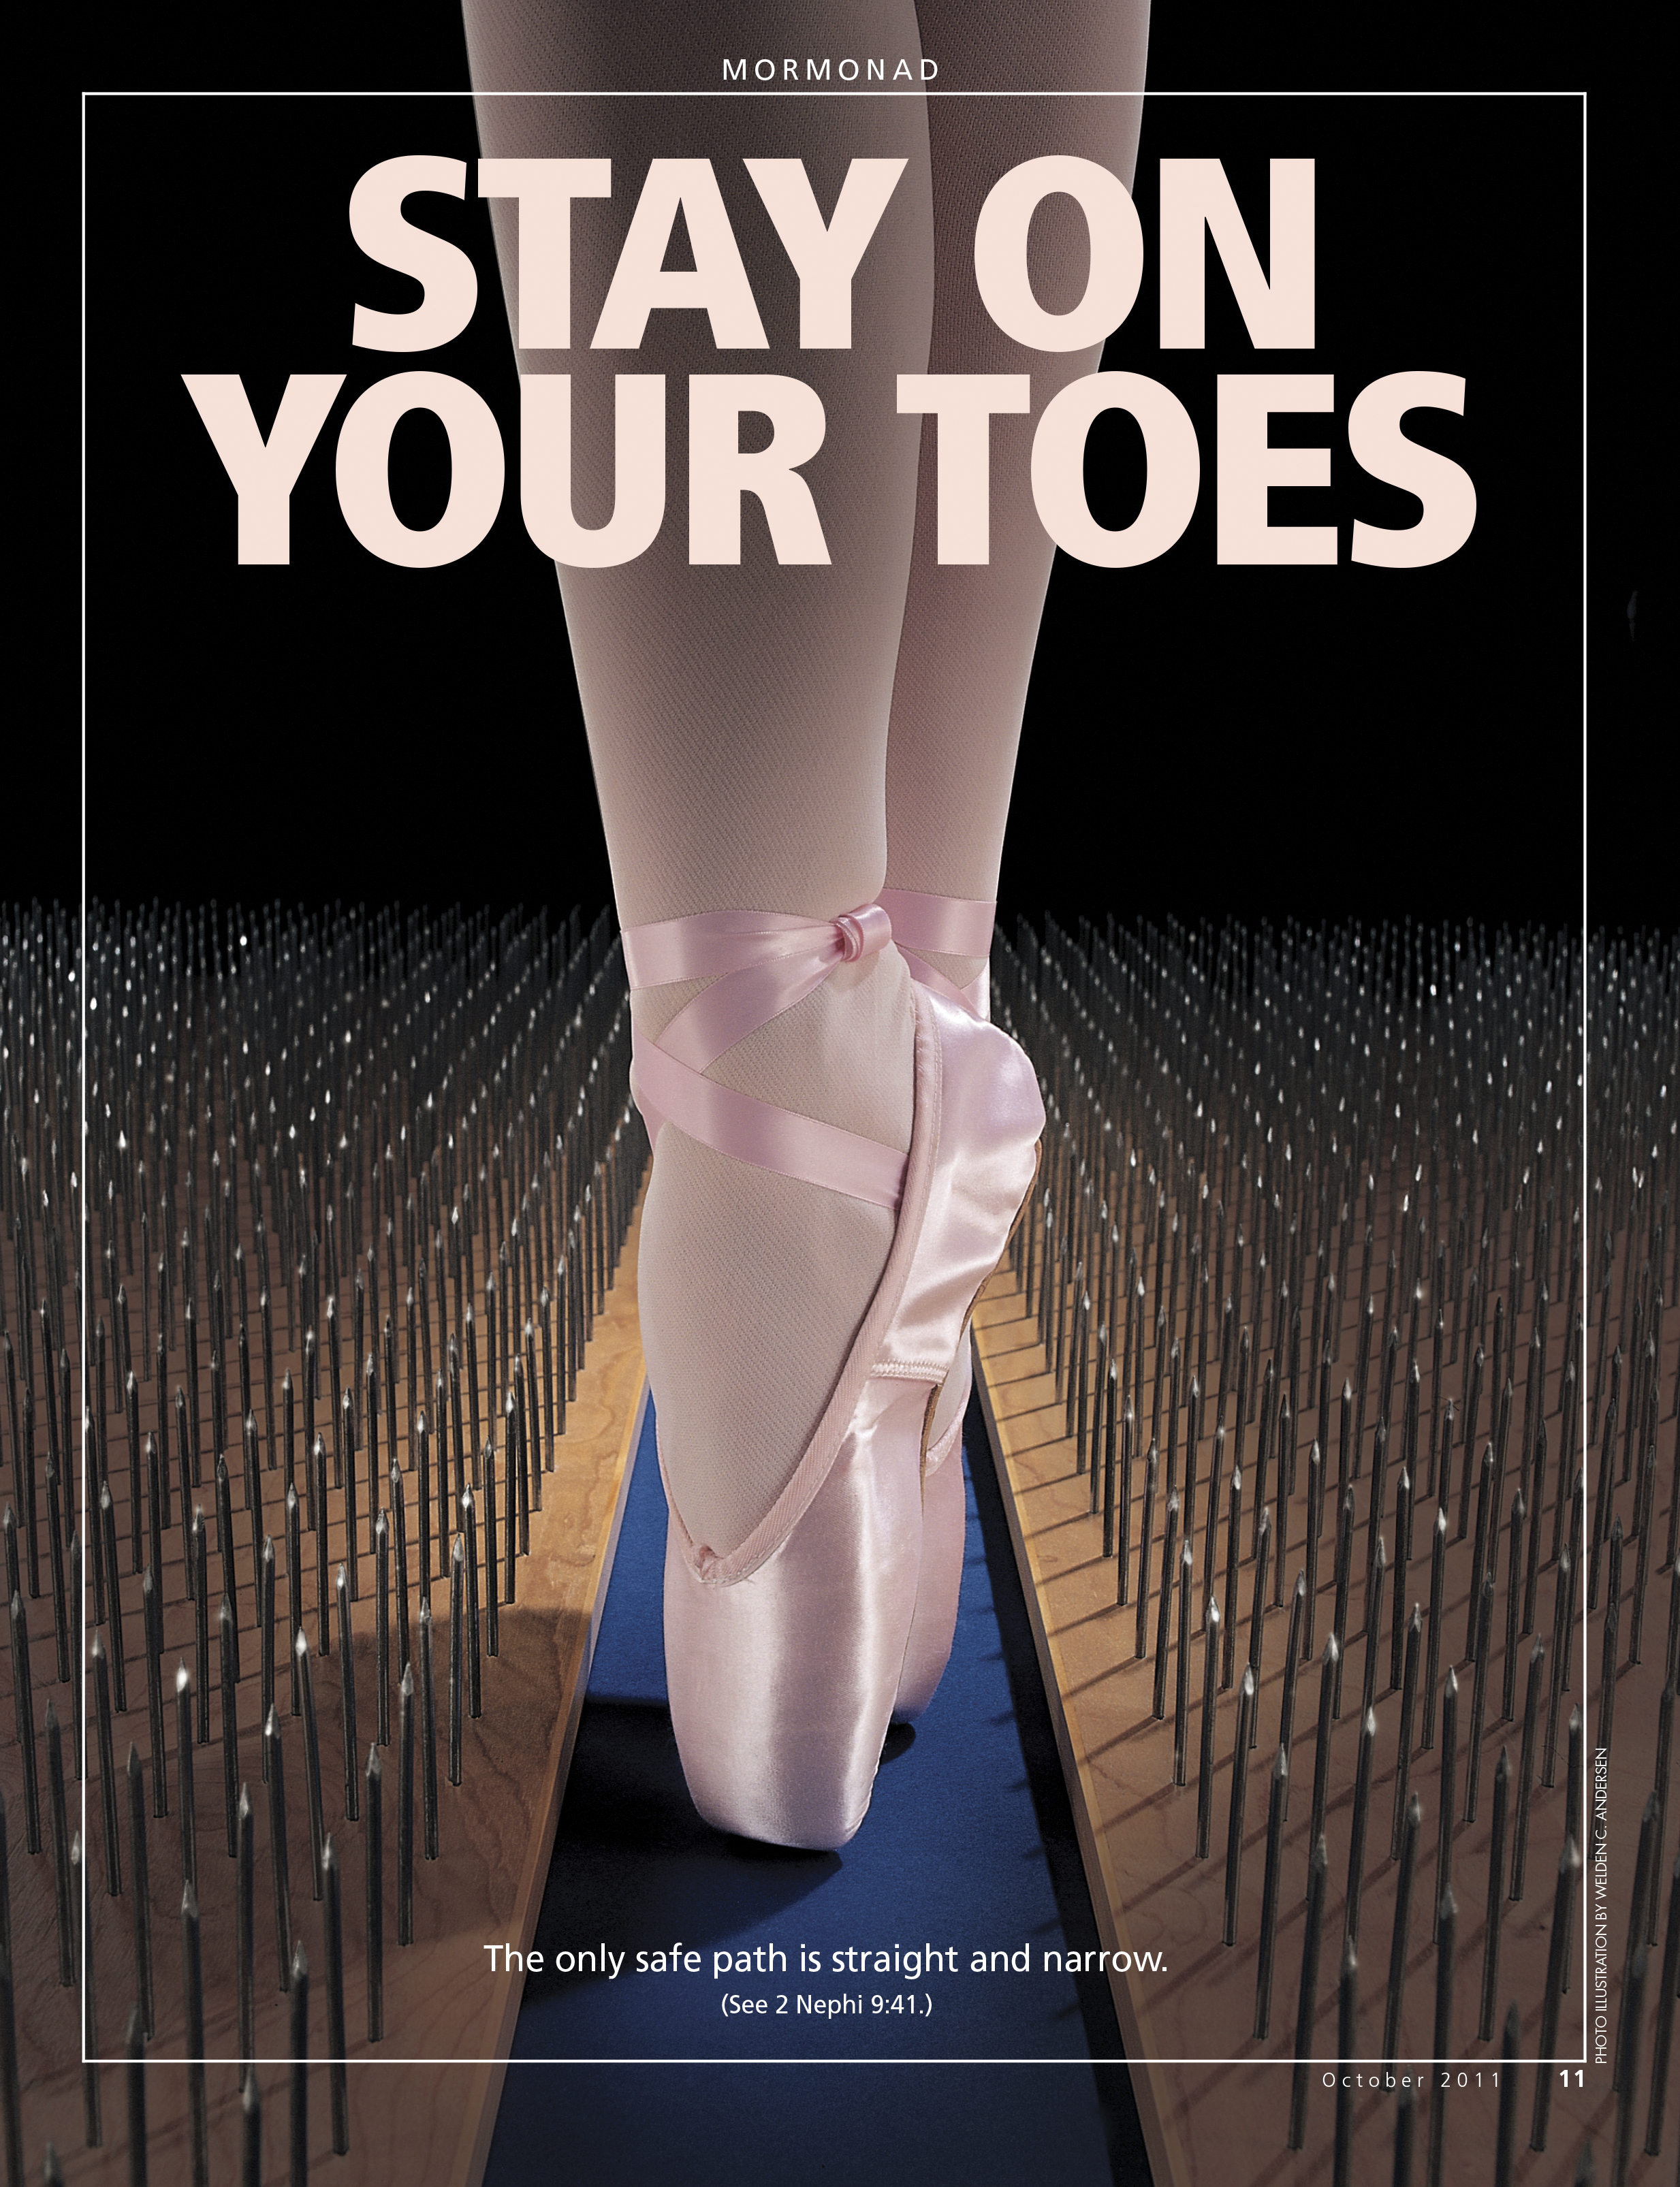 Stay on Your Toes. The only safe path is straight and narrow. (See 2 Nephi 9:41.) Oct. 2011 © undefined ipCode 1.